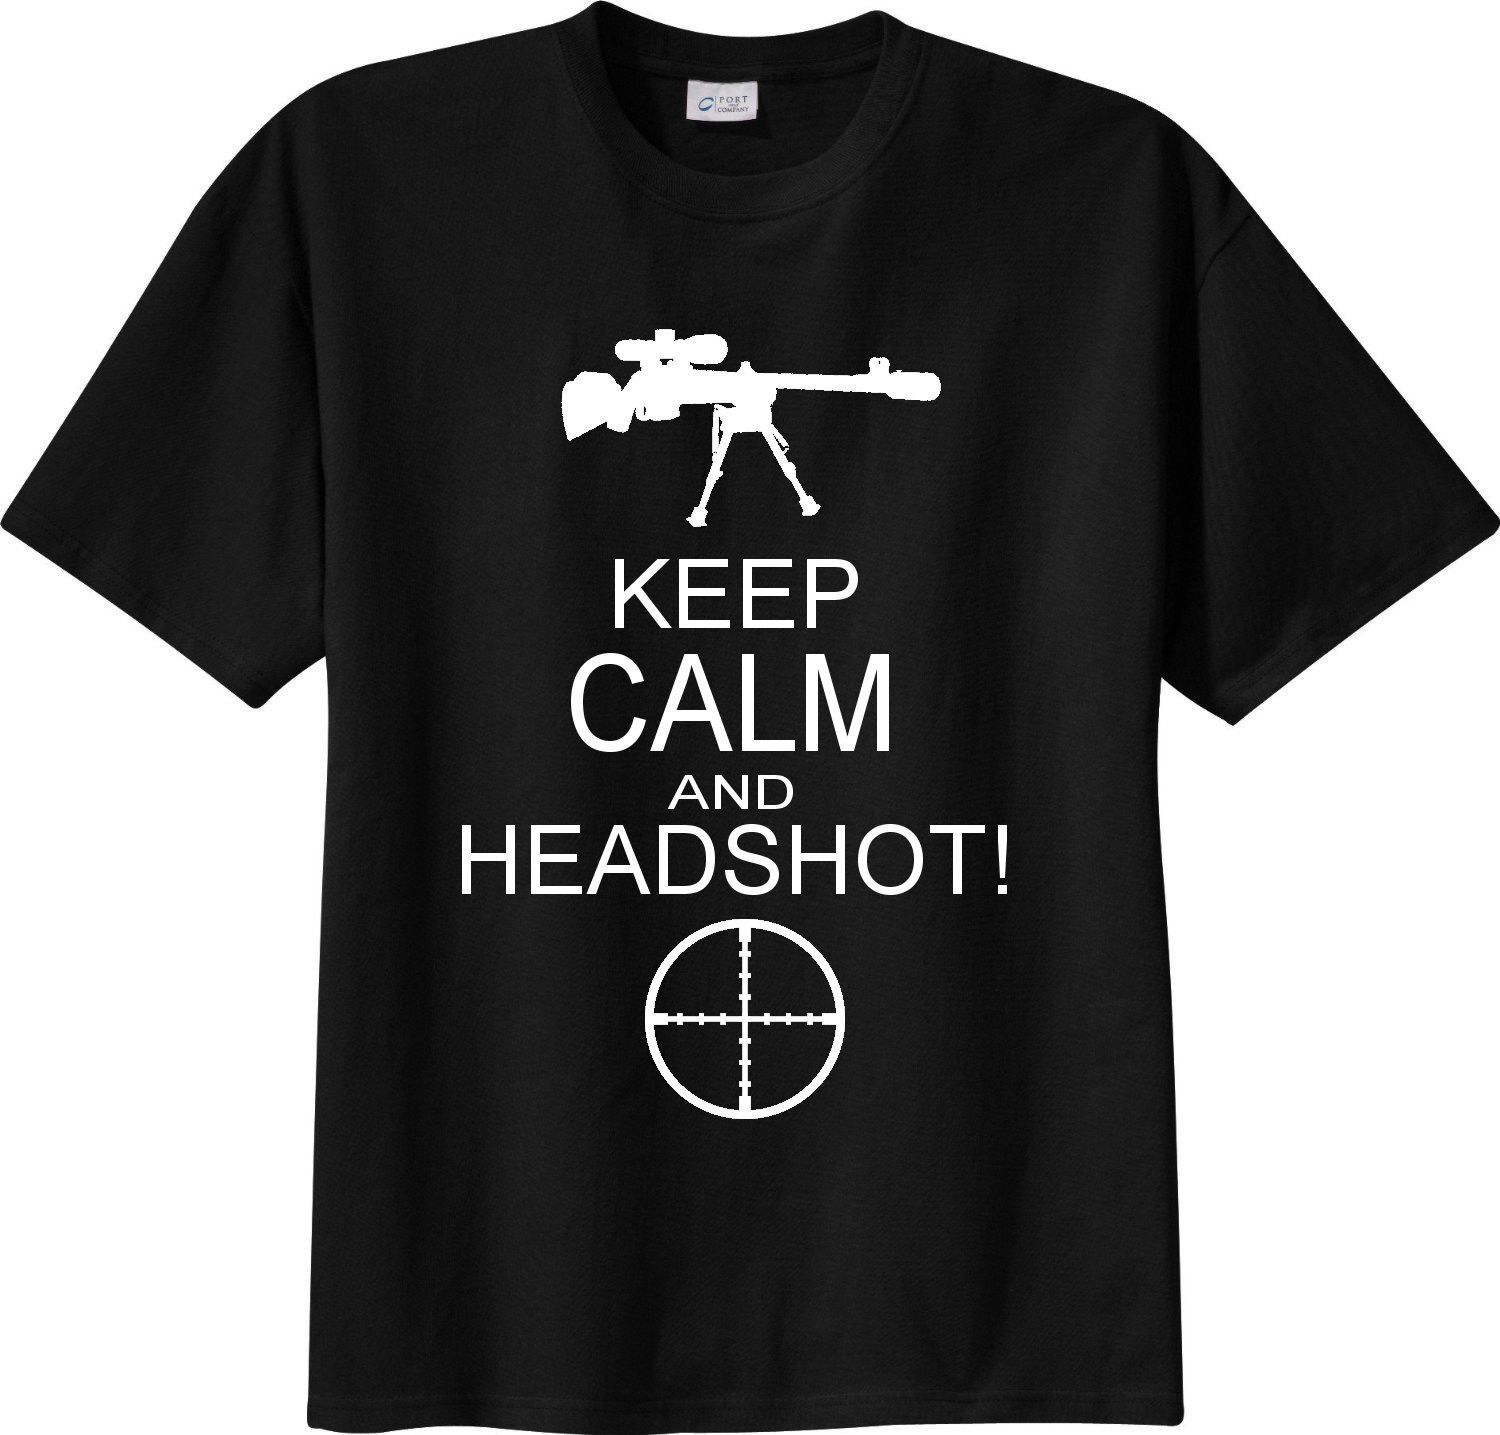 T-SHIRT sniper cecchino KEEP CALM HEADSHOT fps mmo image